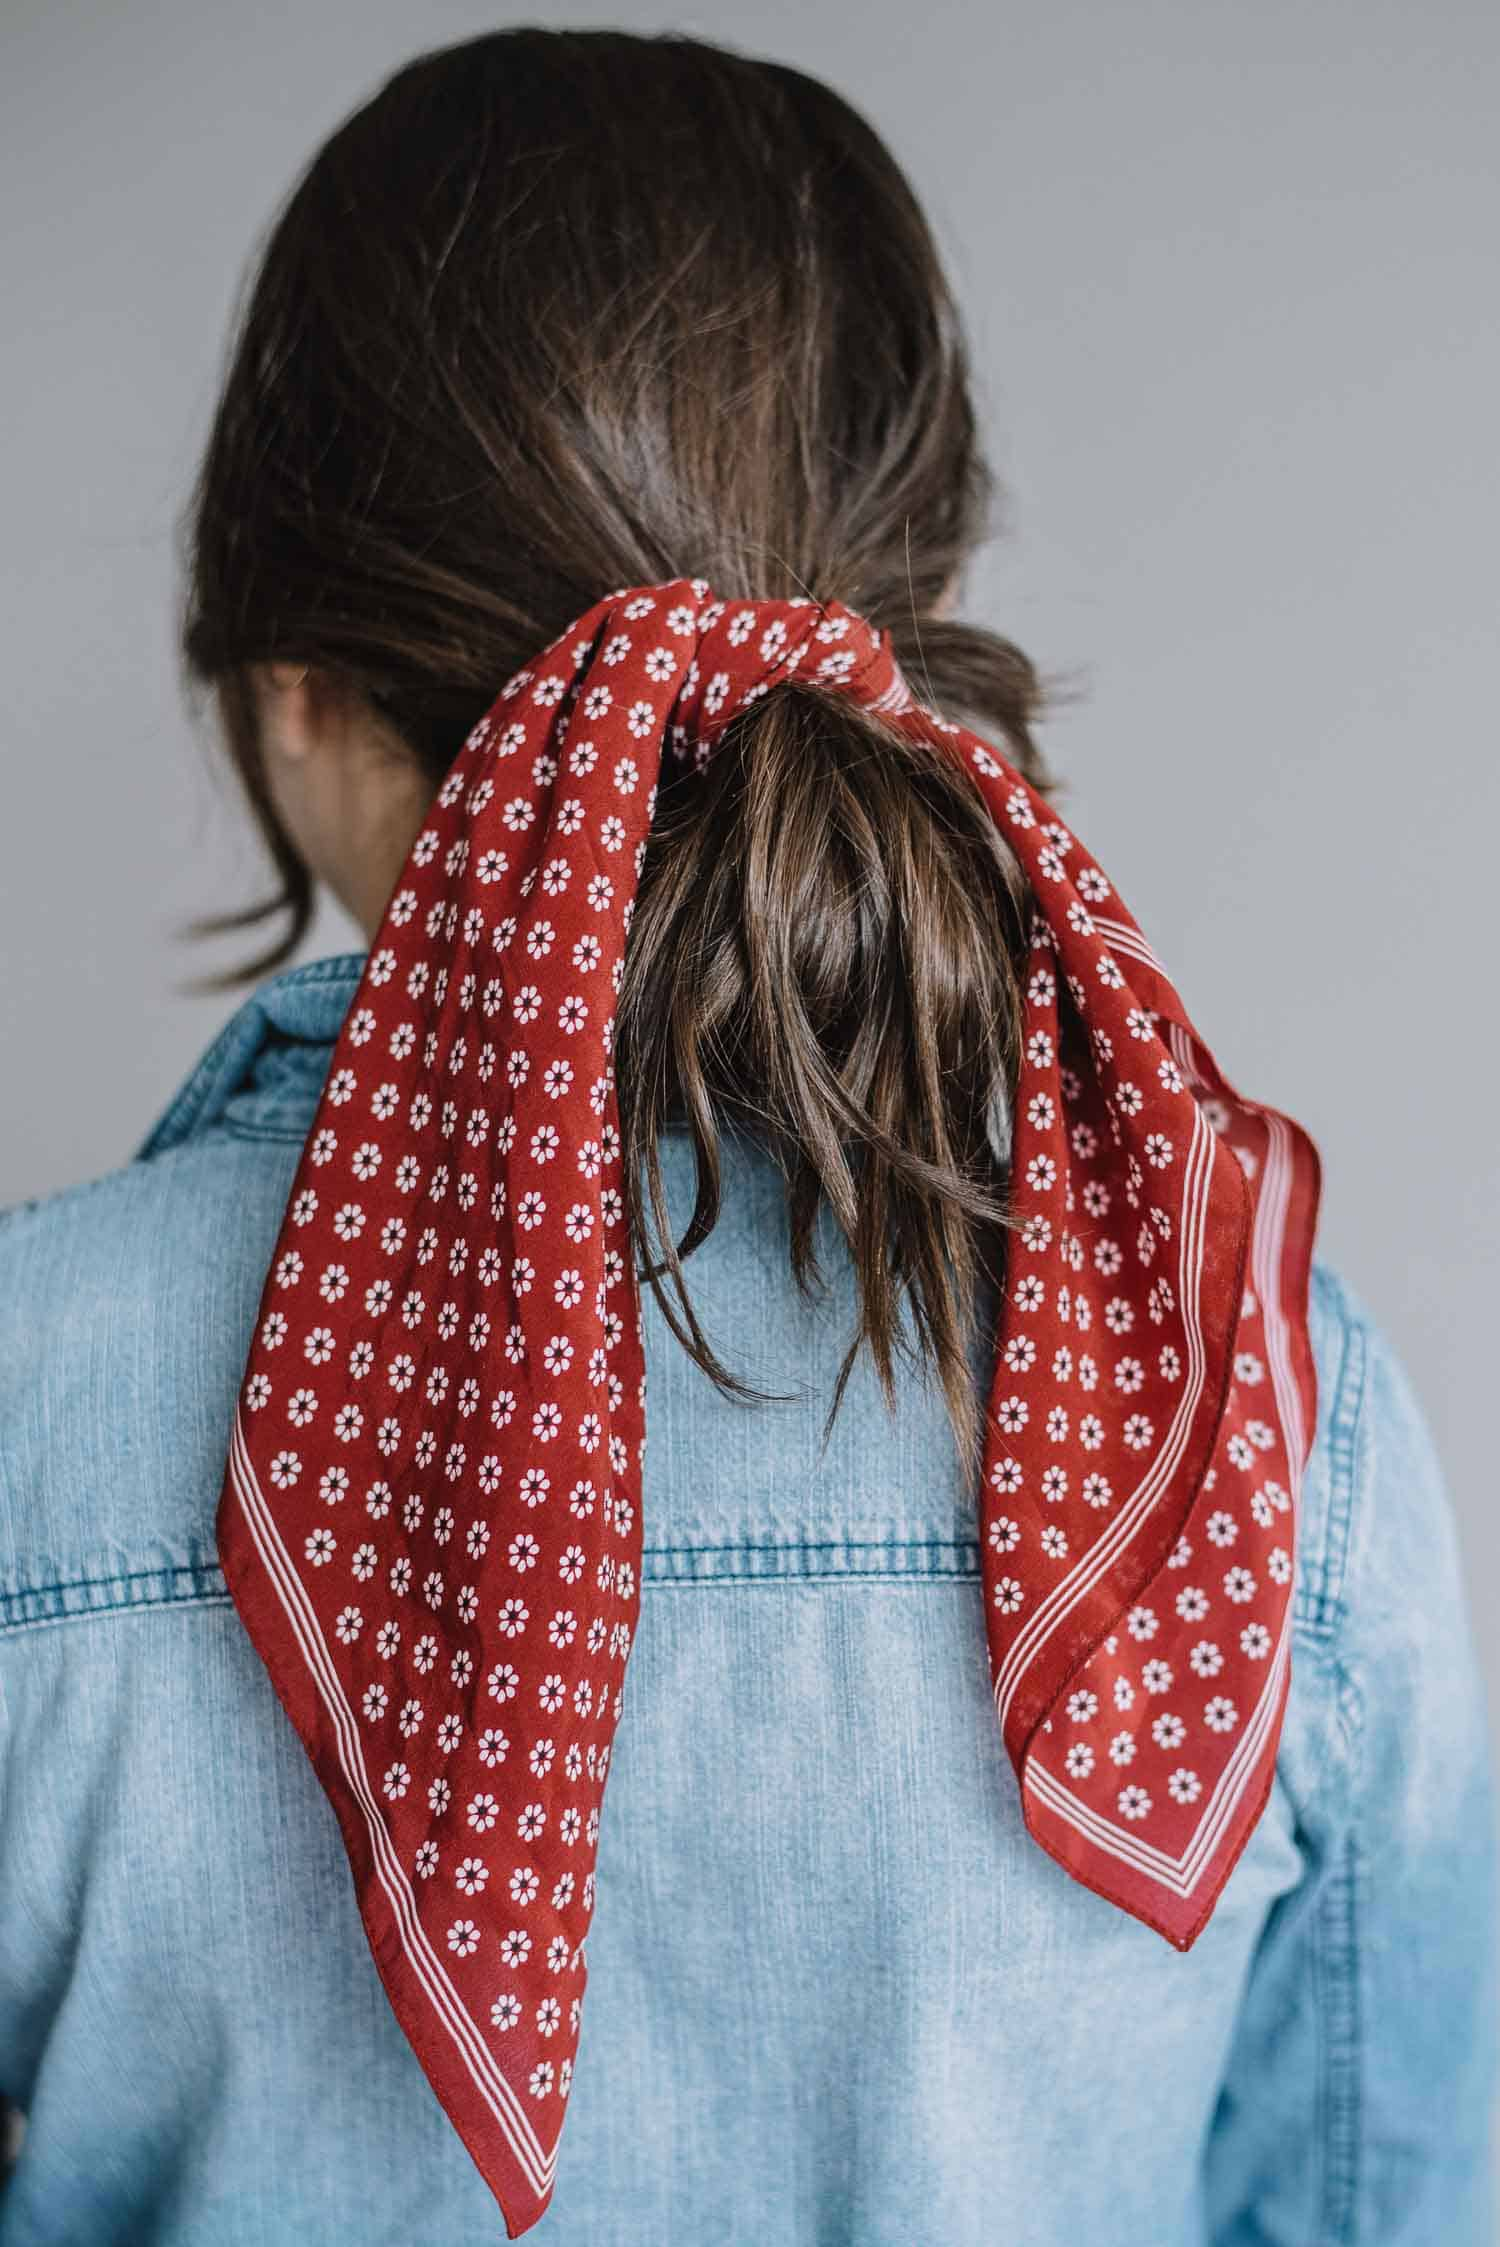 How To Wear A Bandana In Your Hair - The Low Loop